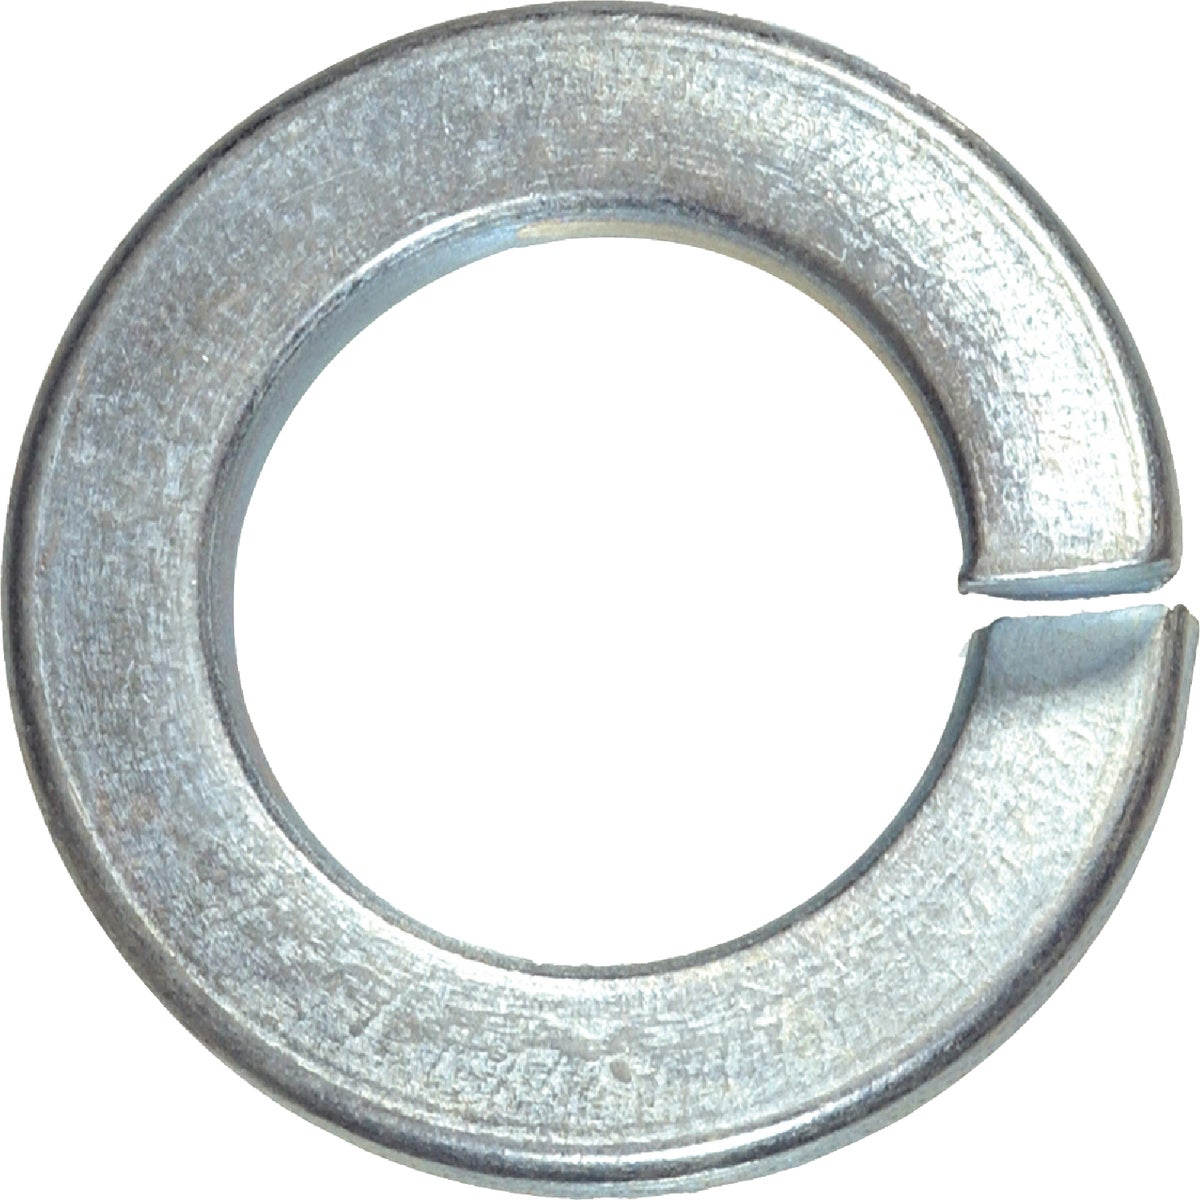 100PC #10 LOCK WASHER